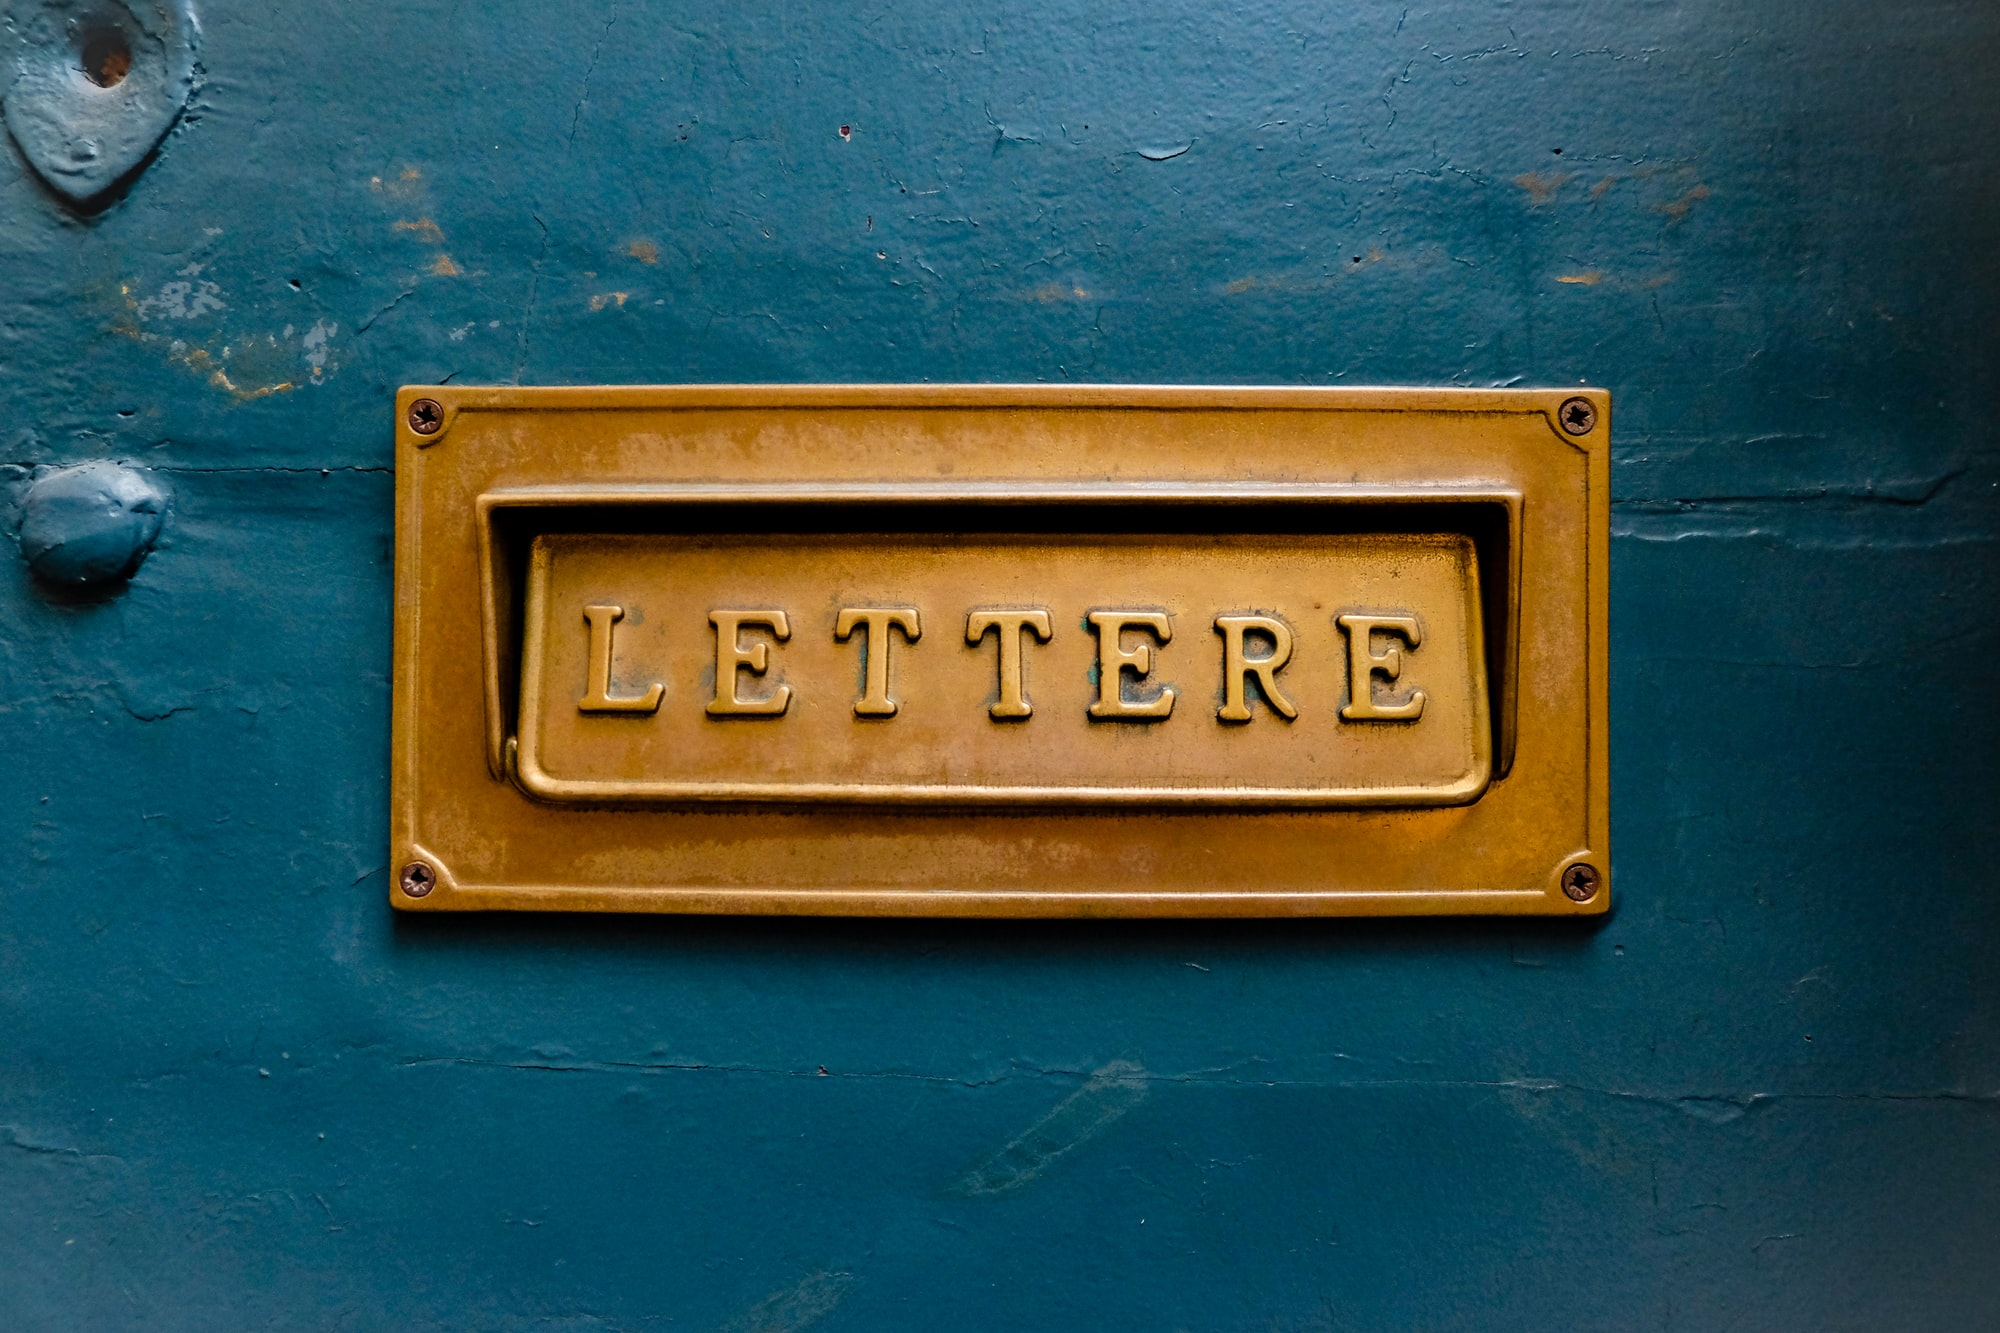 The simplicity and beauty of Italy in one mailbox.